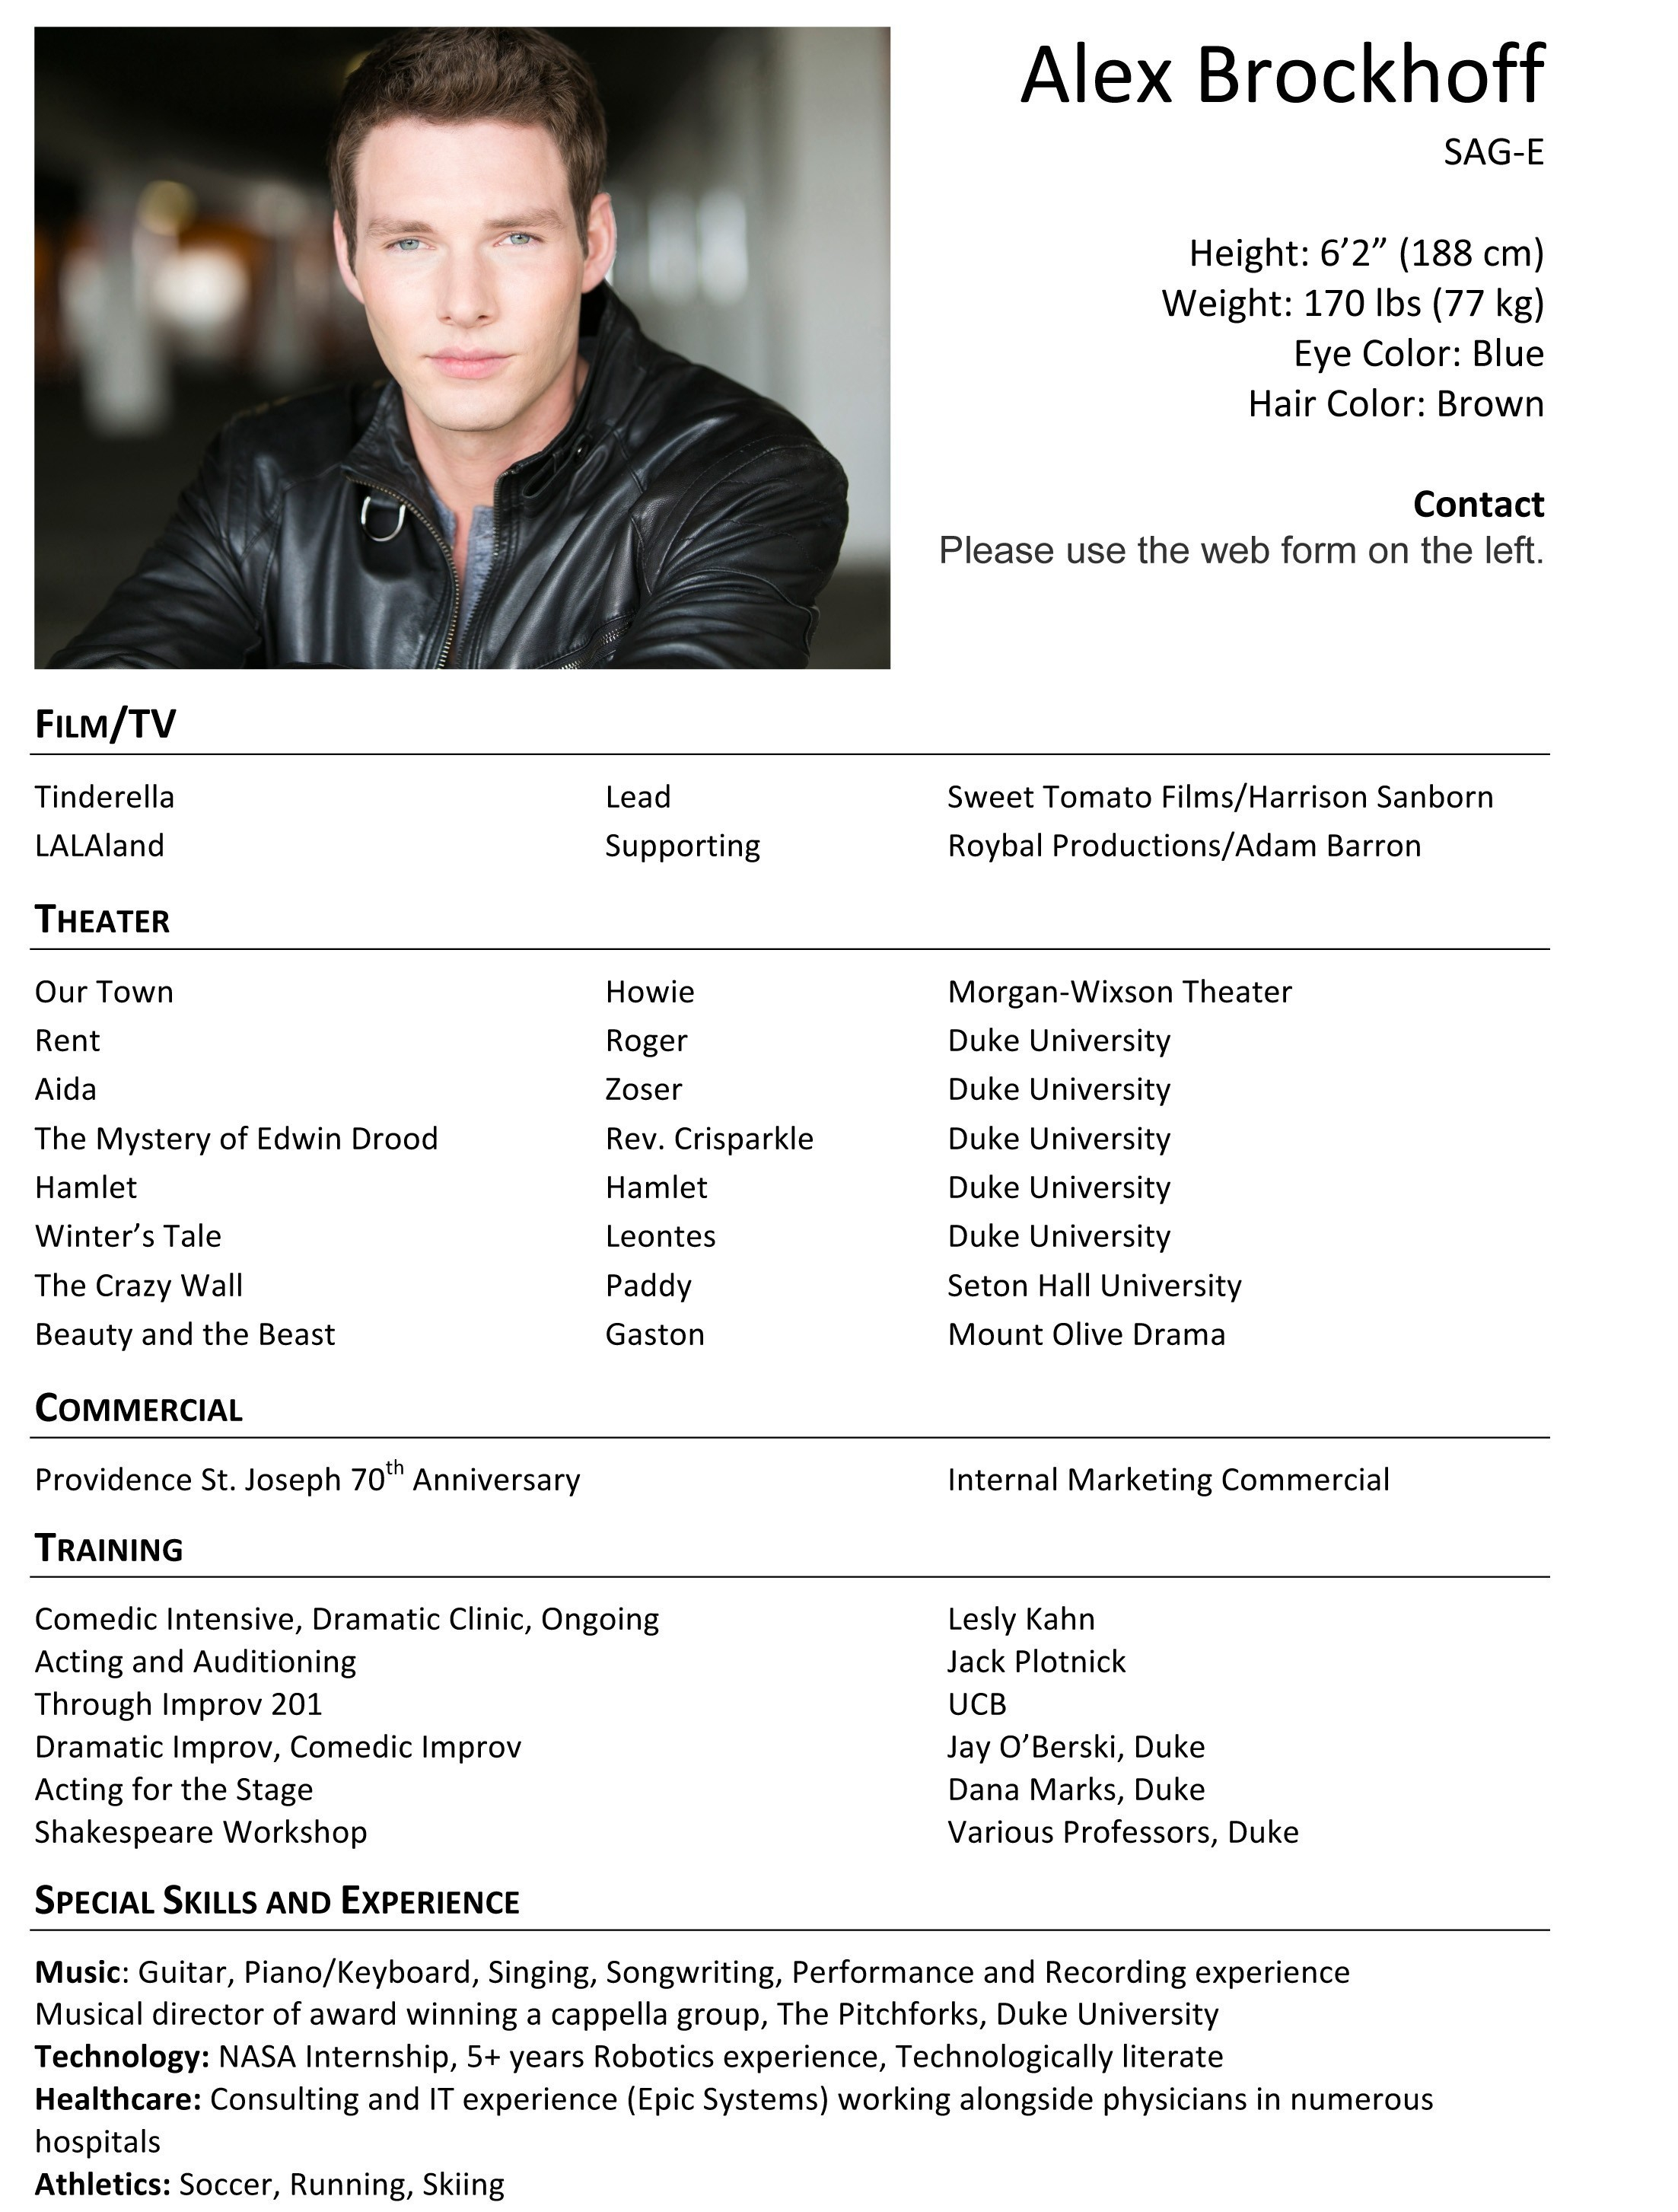 Child Actors Resume Template - Child Acting Resume Sample Fresh Child Actor Resume Awesome Child